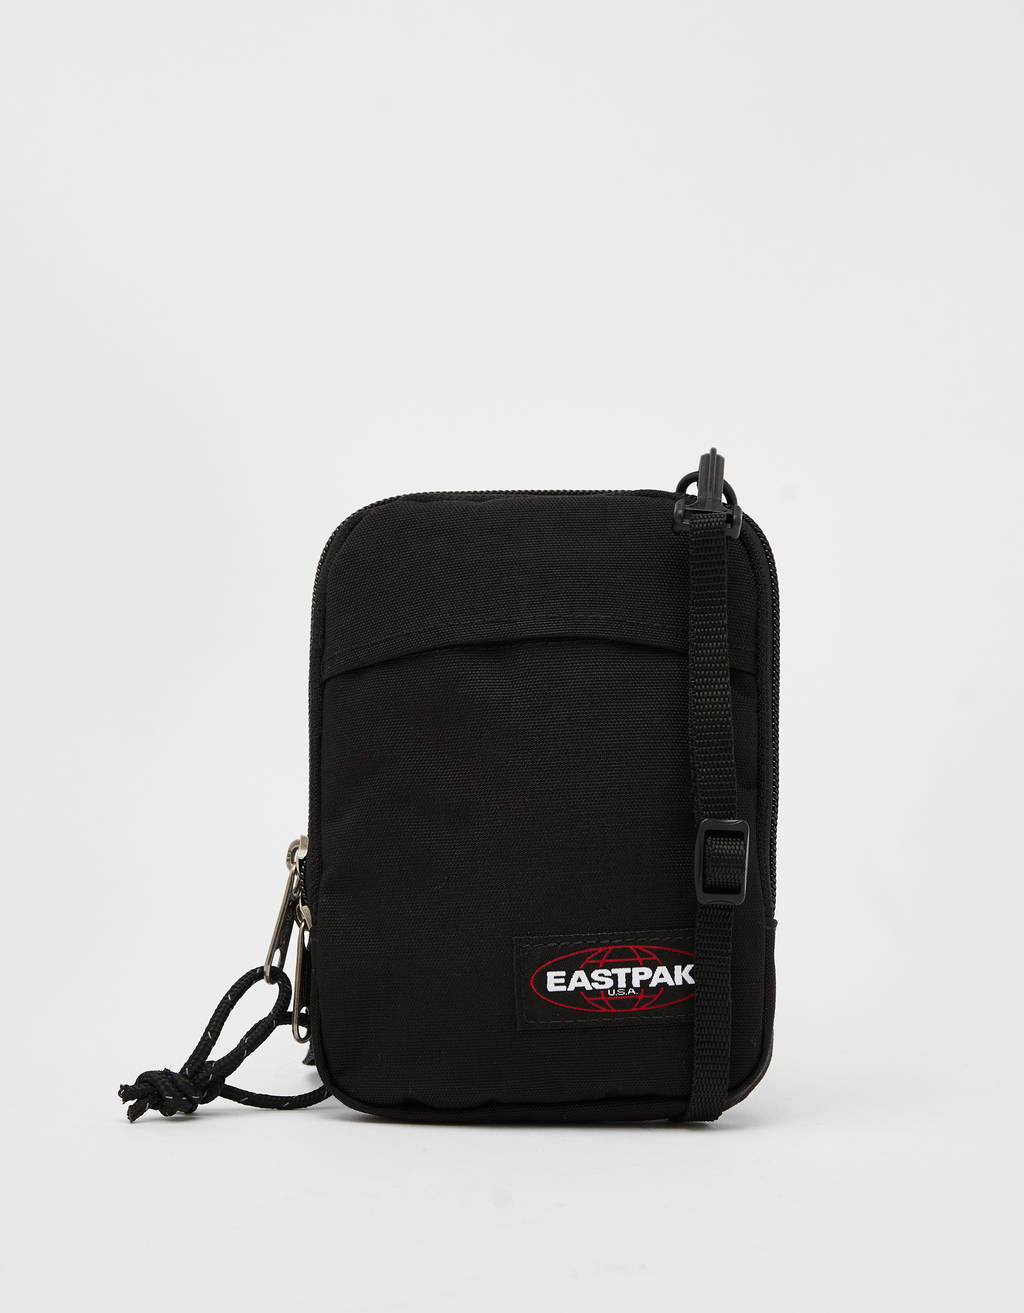 Eastpak Brustbeutel